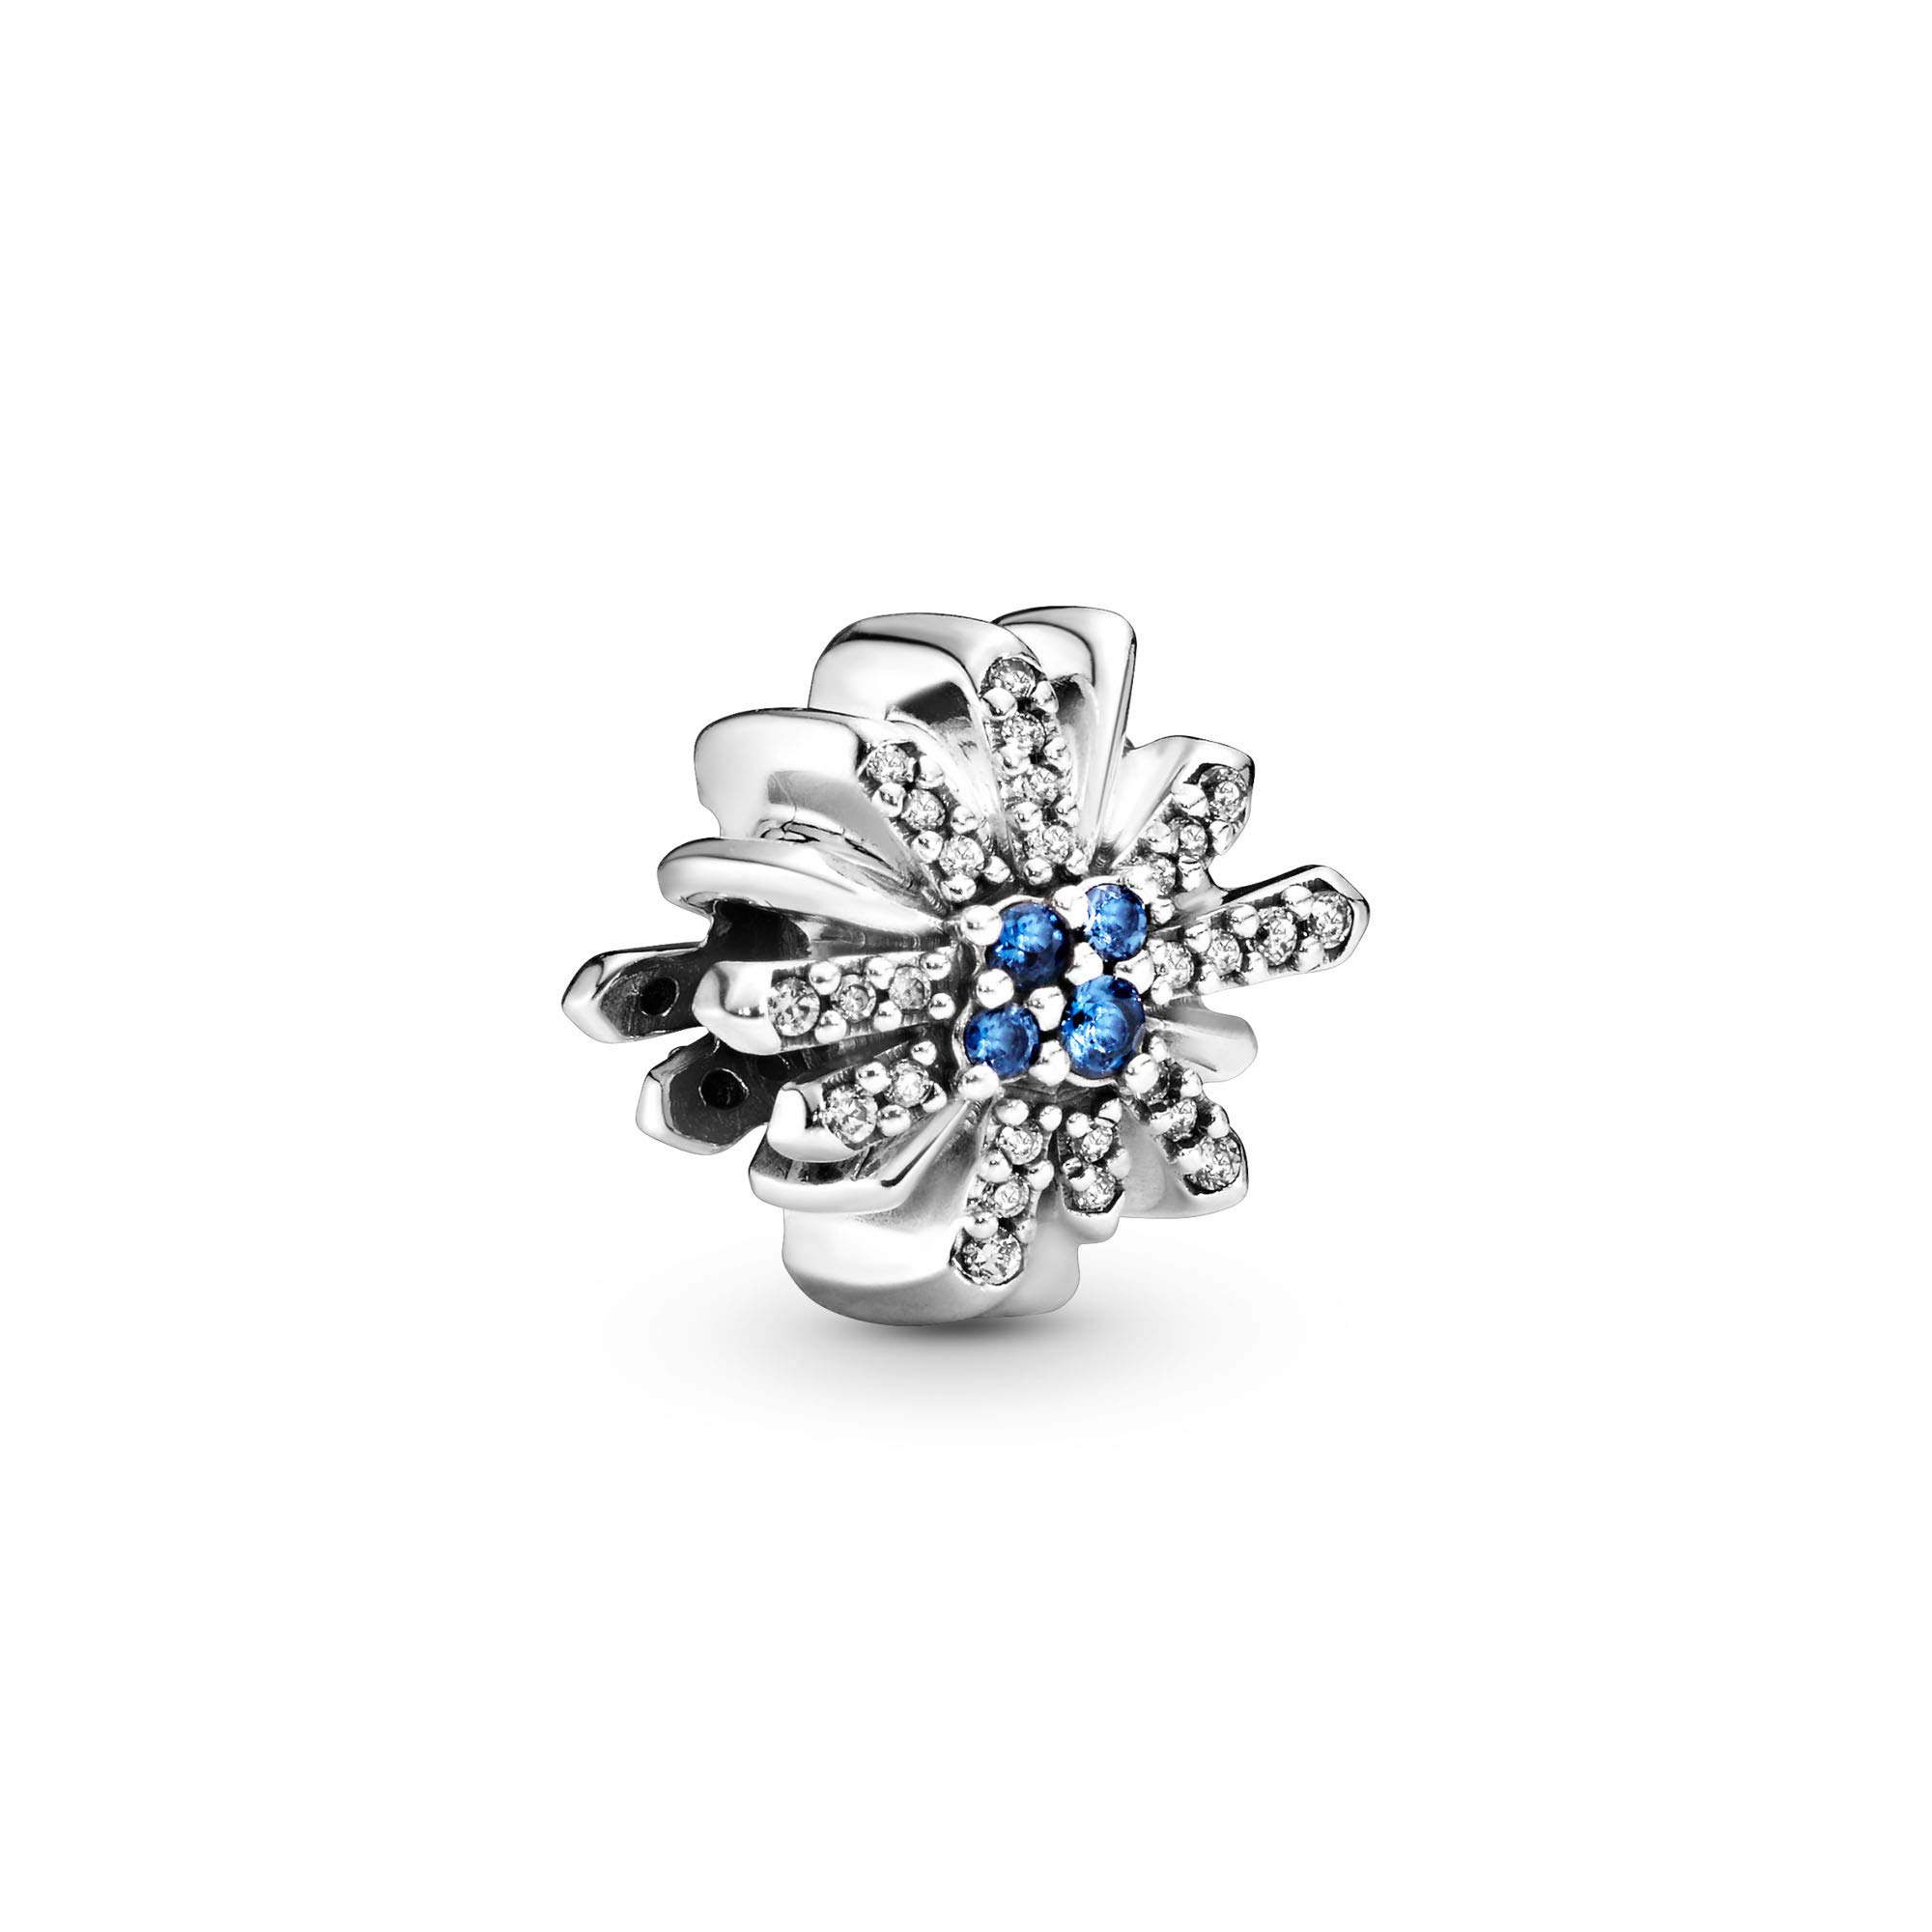 Pandora Jewelry Dazzling Fireworks Crystal and Cubic Zirconia Charm in Sterling Silver